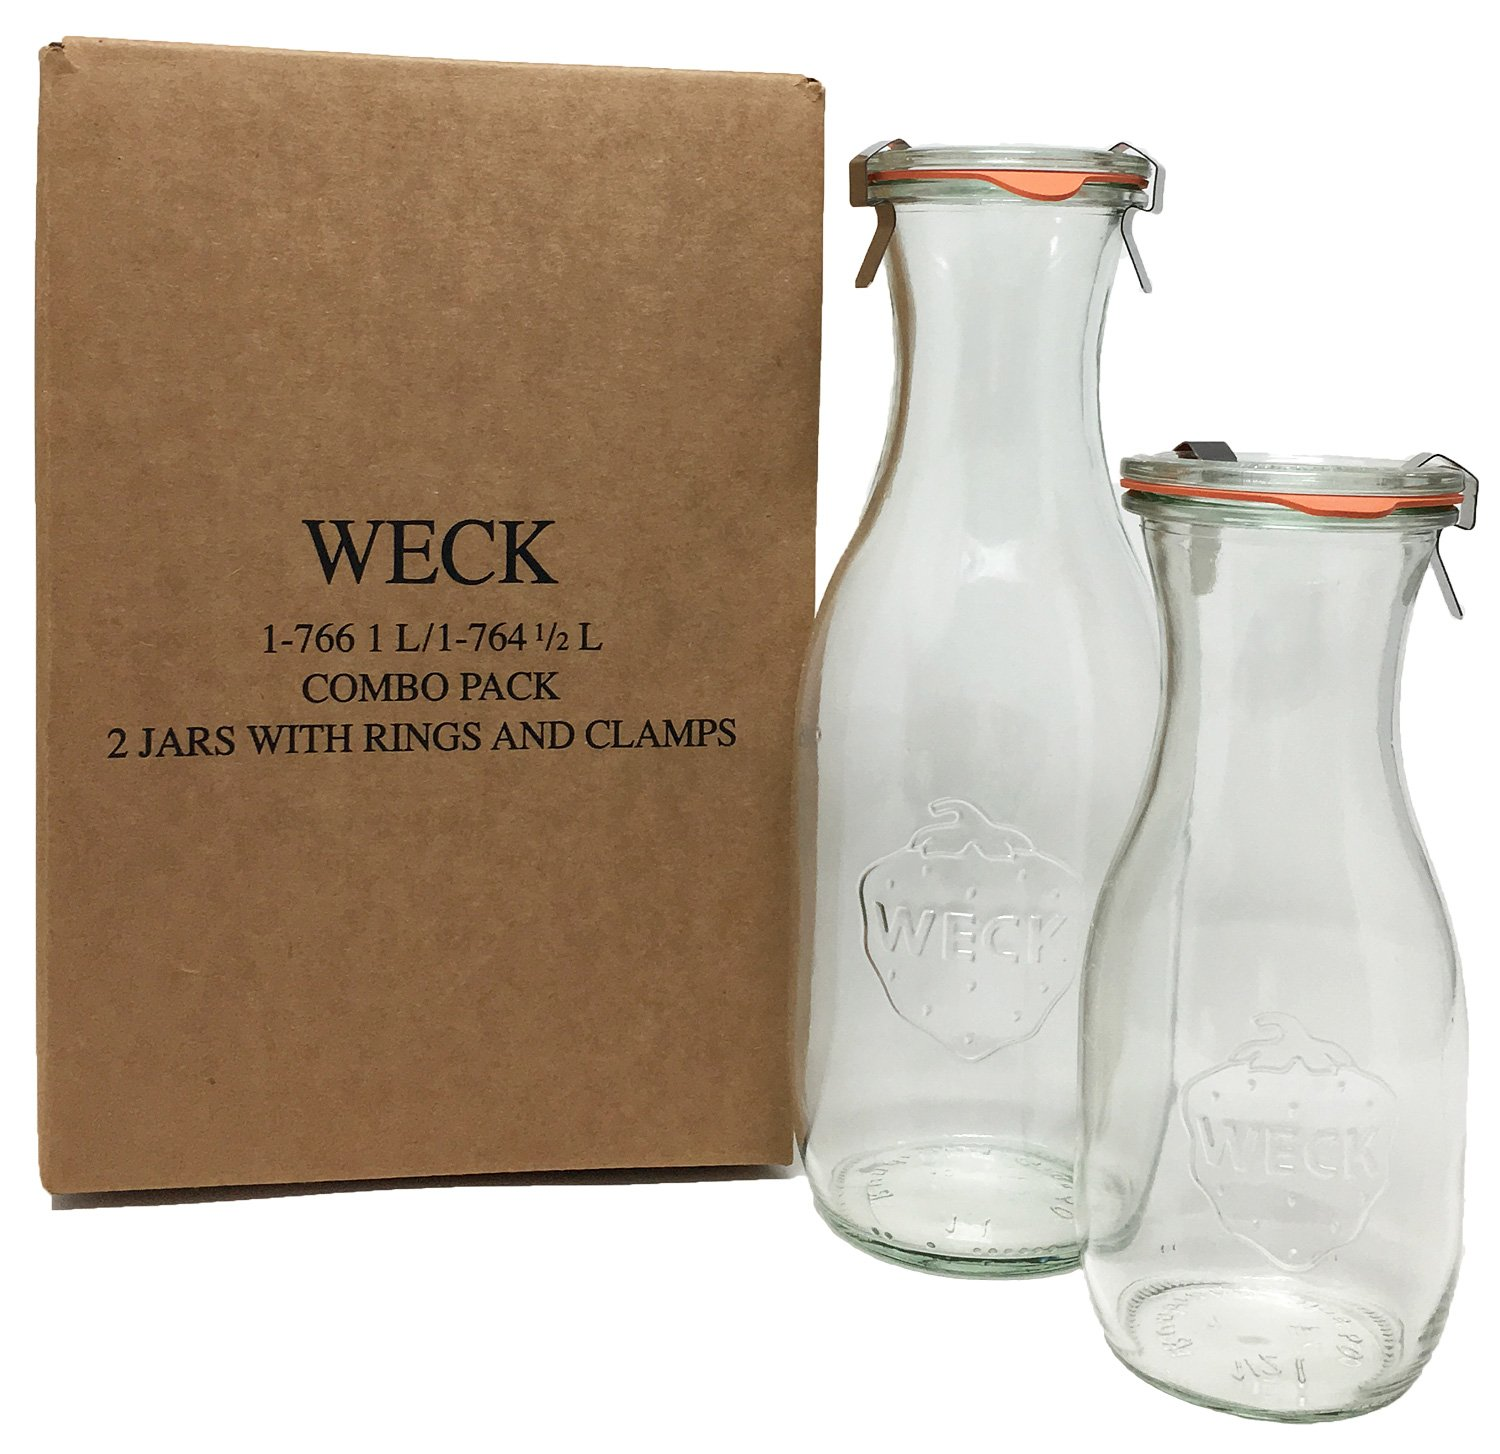 Weck Juice Jar Combo Pack - (1) 766 1-Liter jar (1) 764 1/2-Liter jar with Glass Lids, Rubber Rings and Steel Clamps